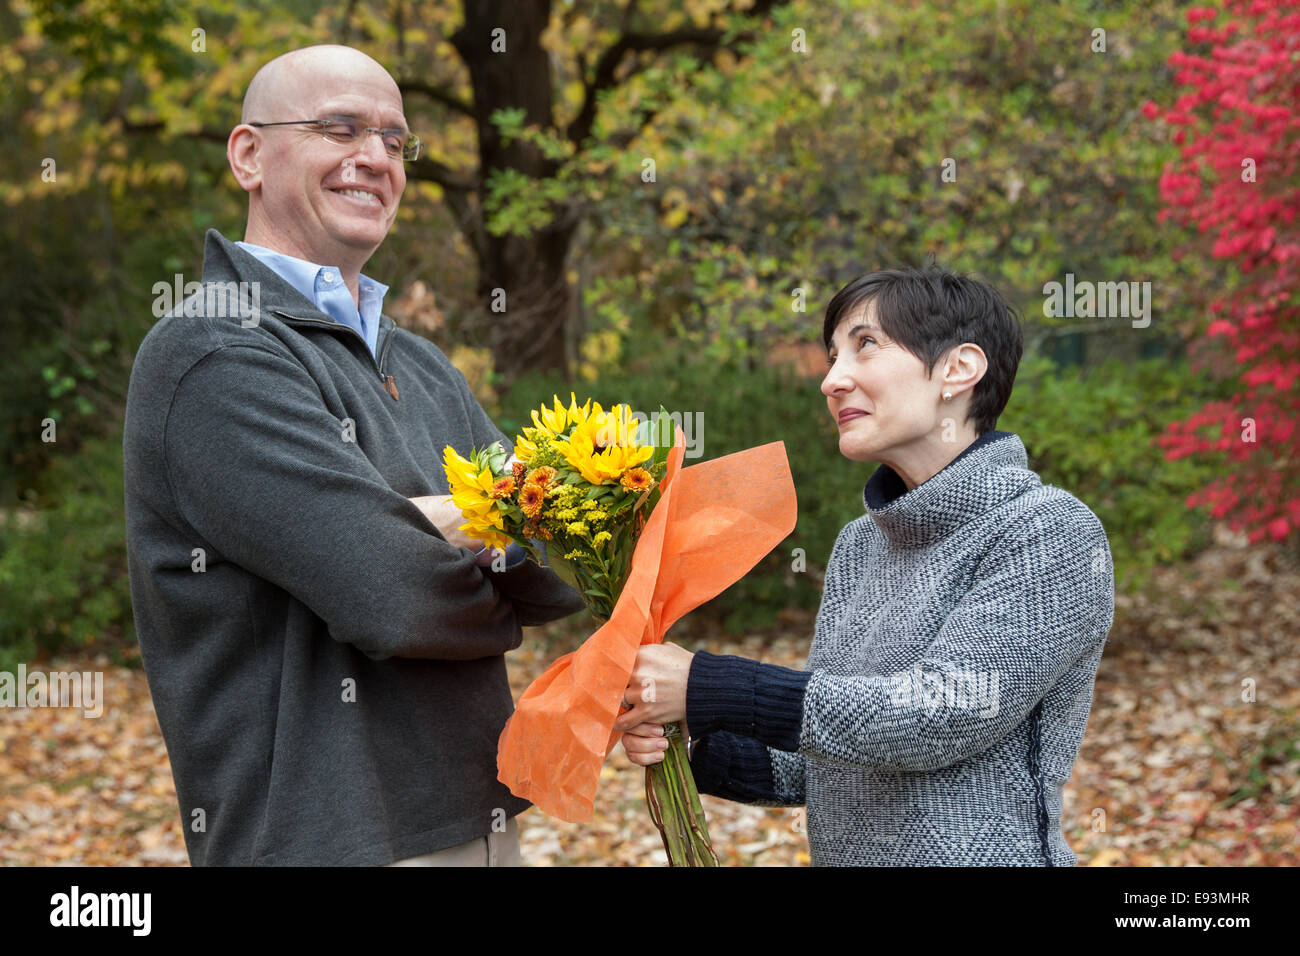 I'm So Sorry, Honey! - Stock Image